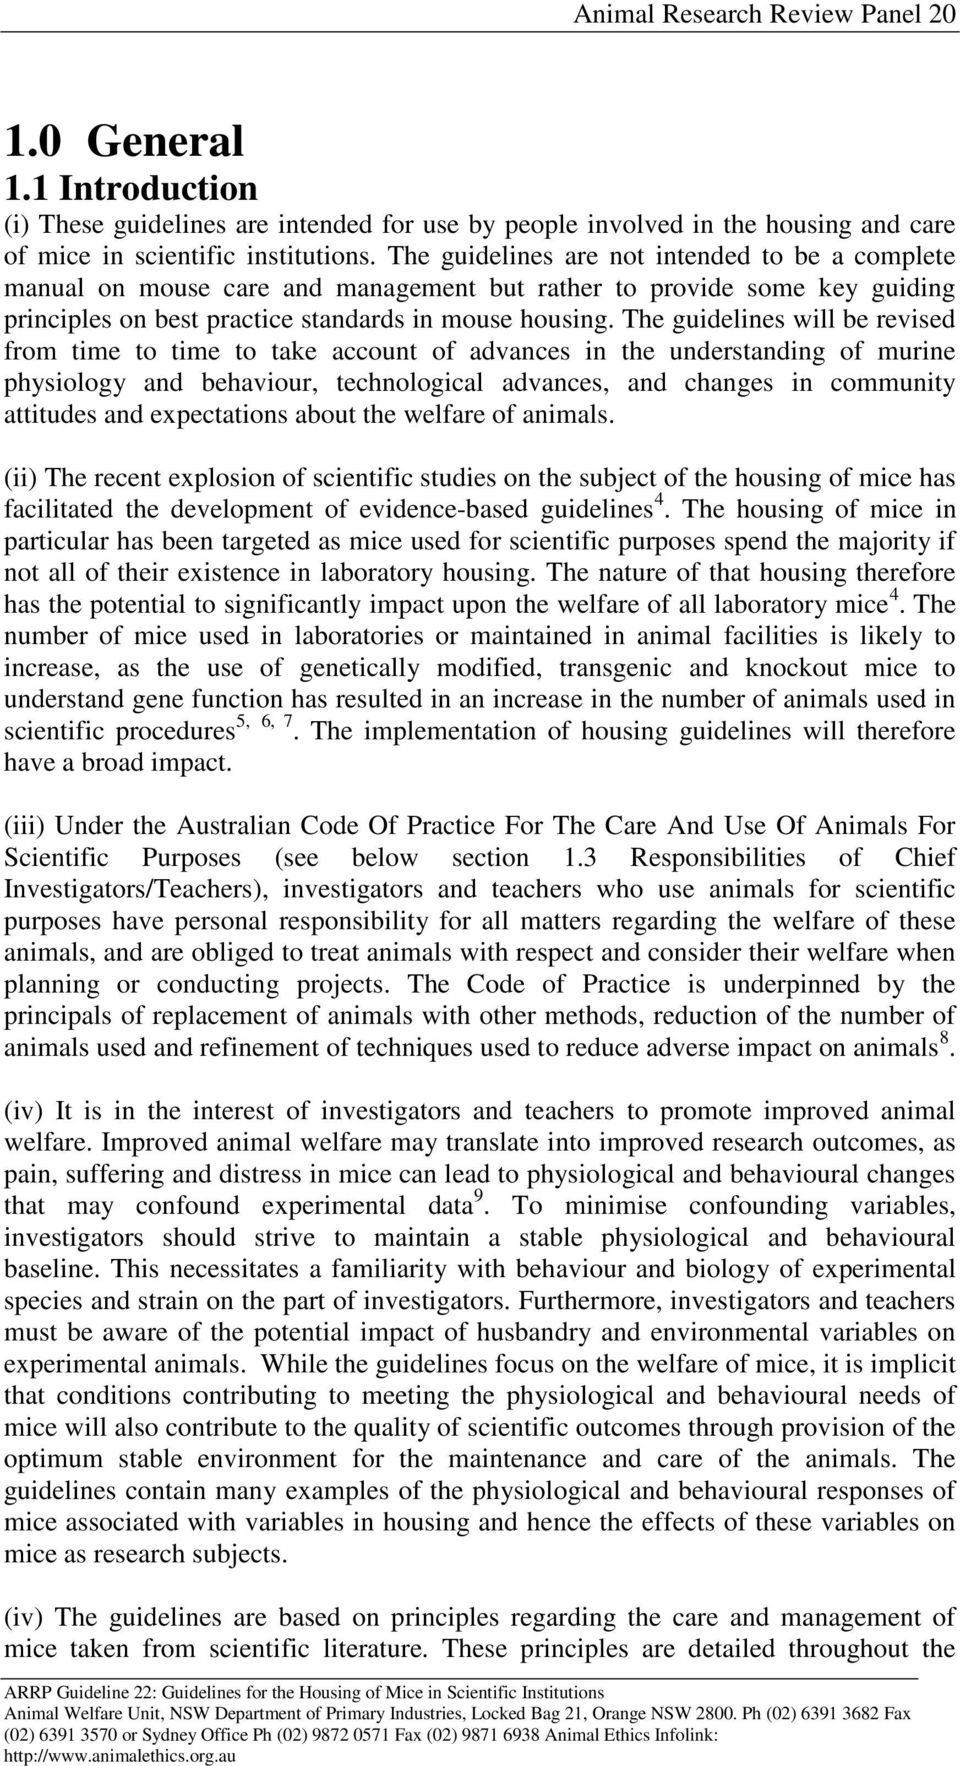 Guidelines for the housing of mice in scientific institutions pdf the guidelines will be revised from time to time to take account of advances in the fandeluxe Choice Image